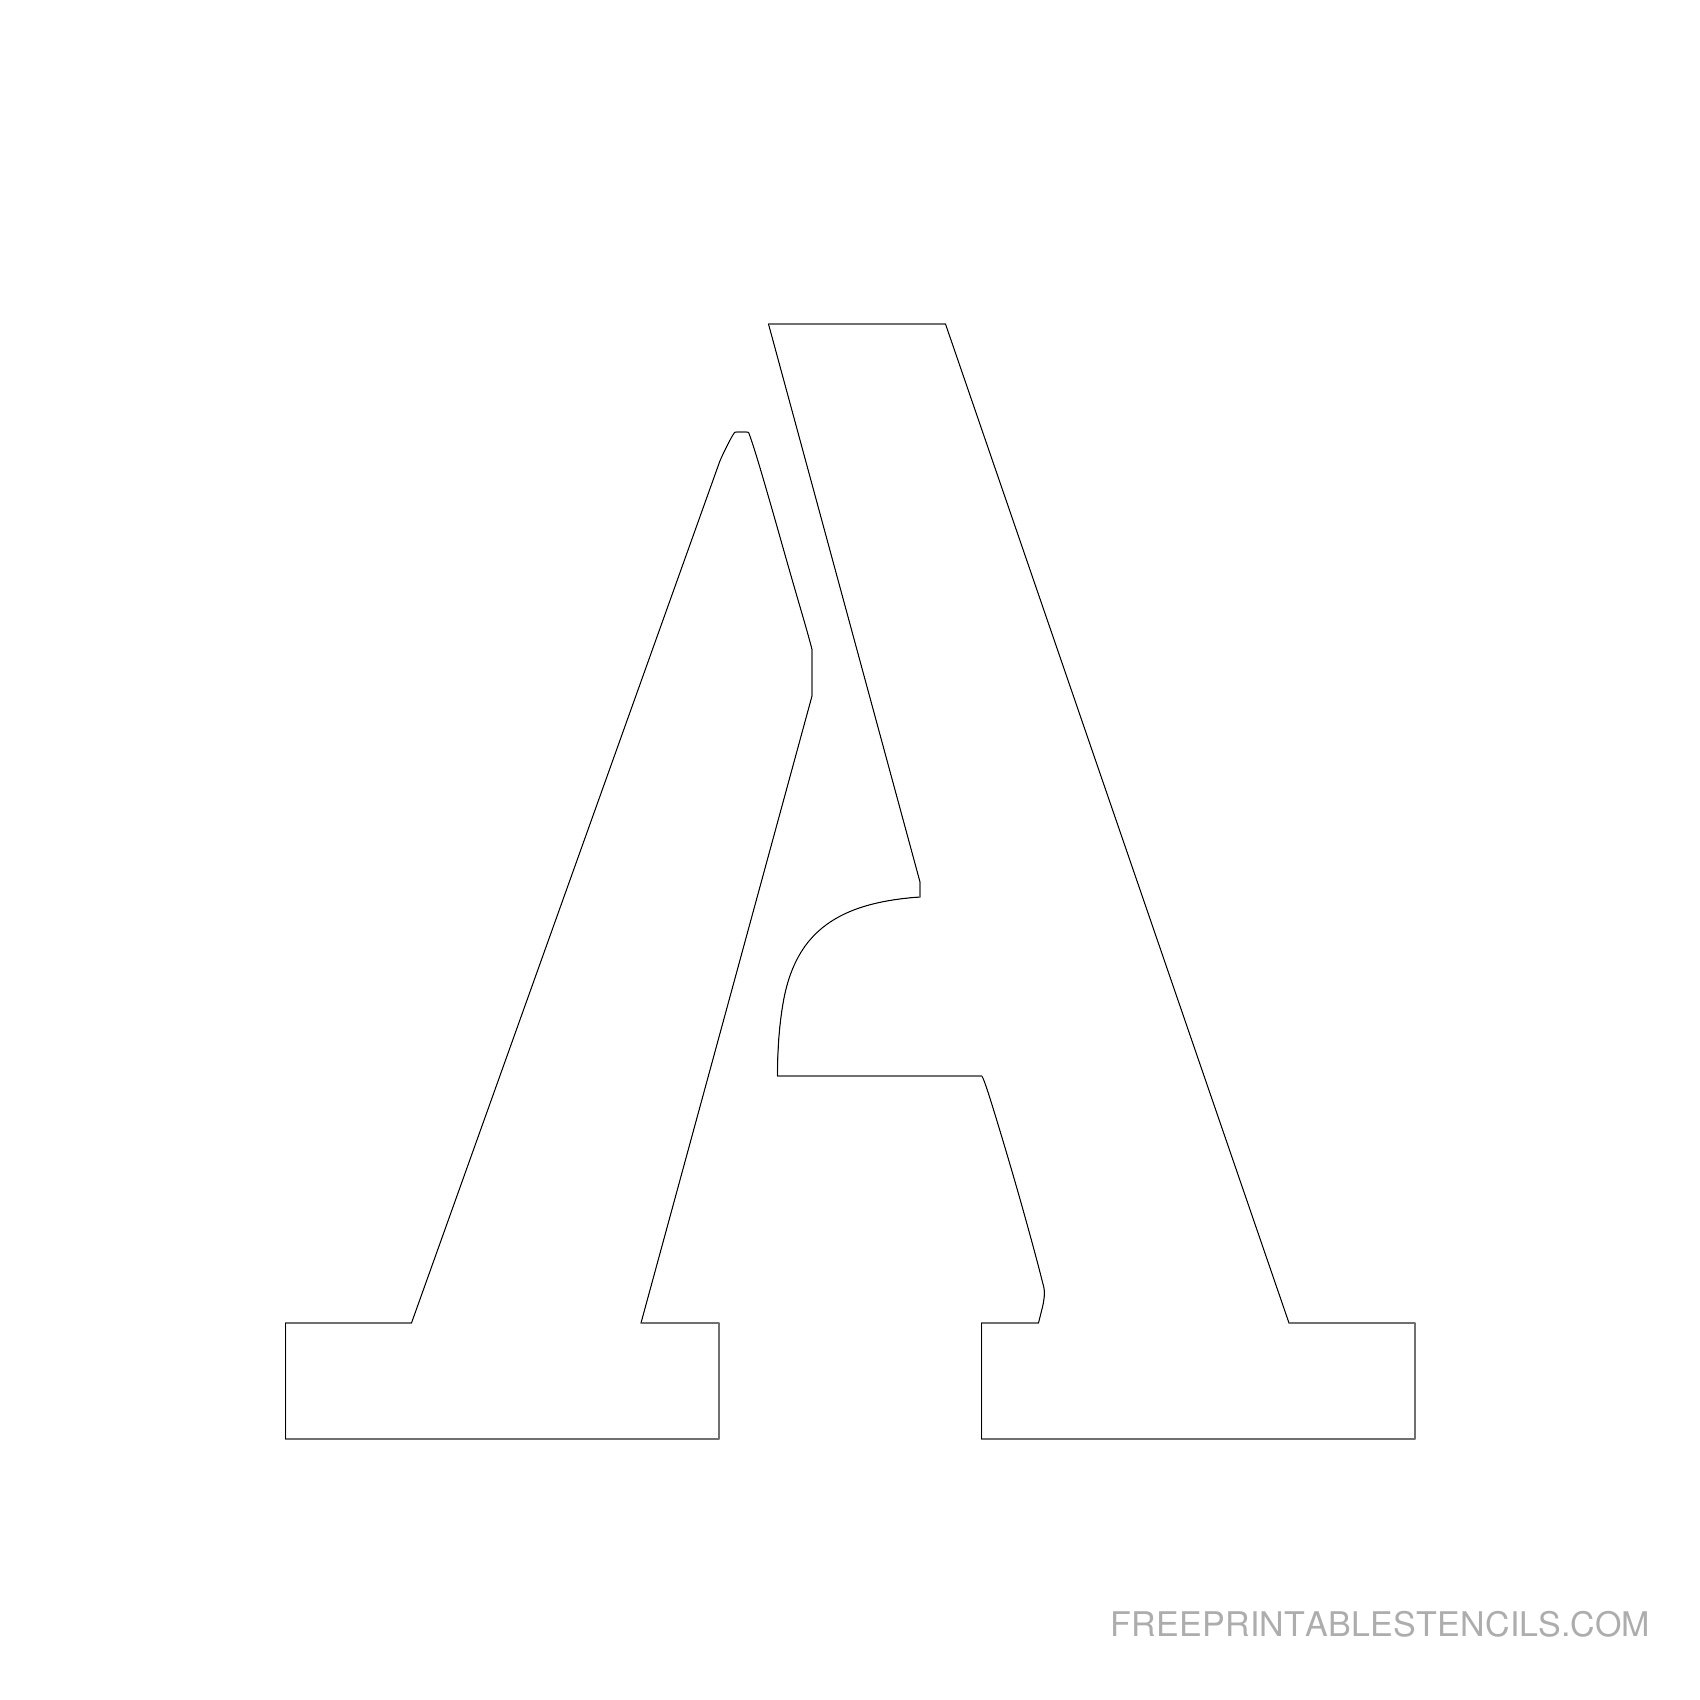 Printable 5 Inch Letter Stencils A-Z | Free Printable Stencils - Free Printable Alphabet Stencils Templates